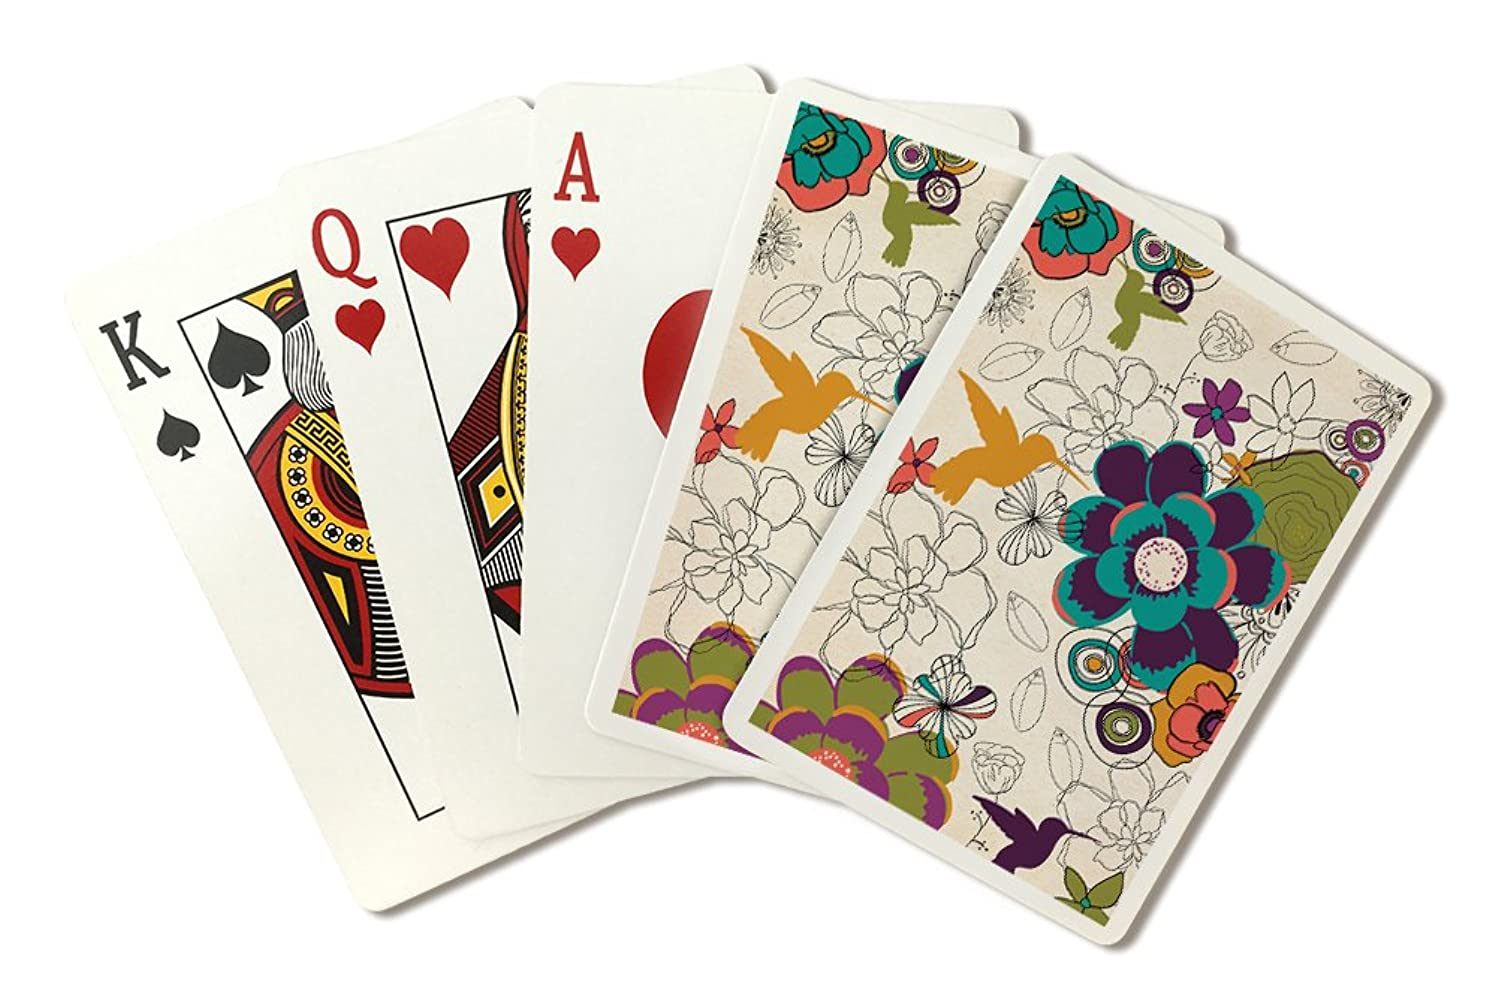 Hummingbirds and Flowers Pattern (Playing Card Deck - 52 Card Poker Size with Jokers)